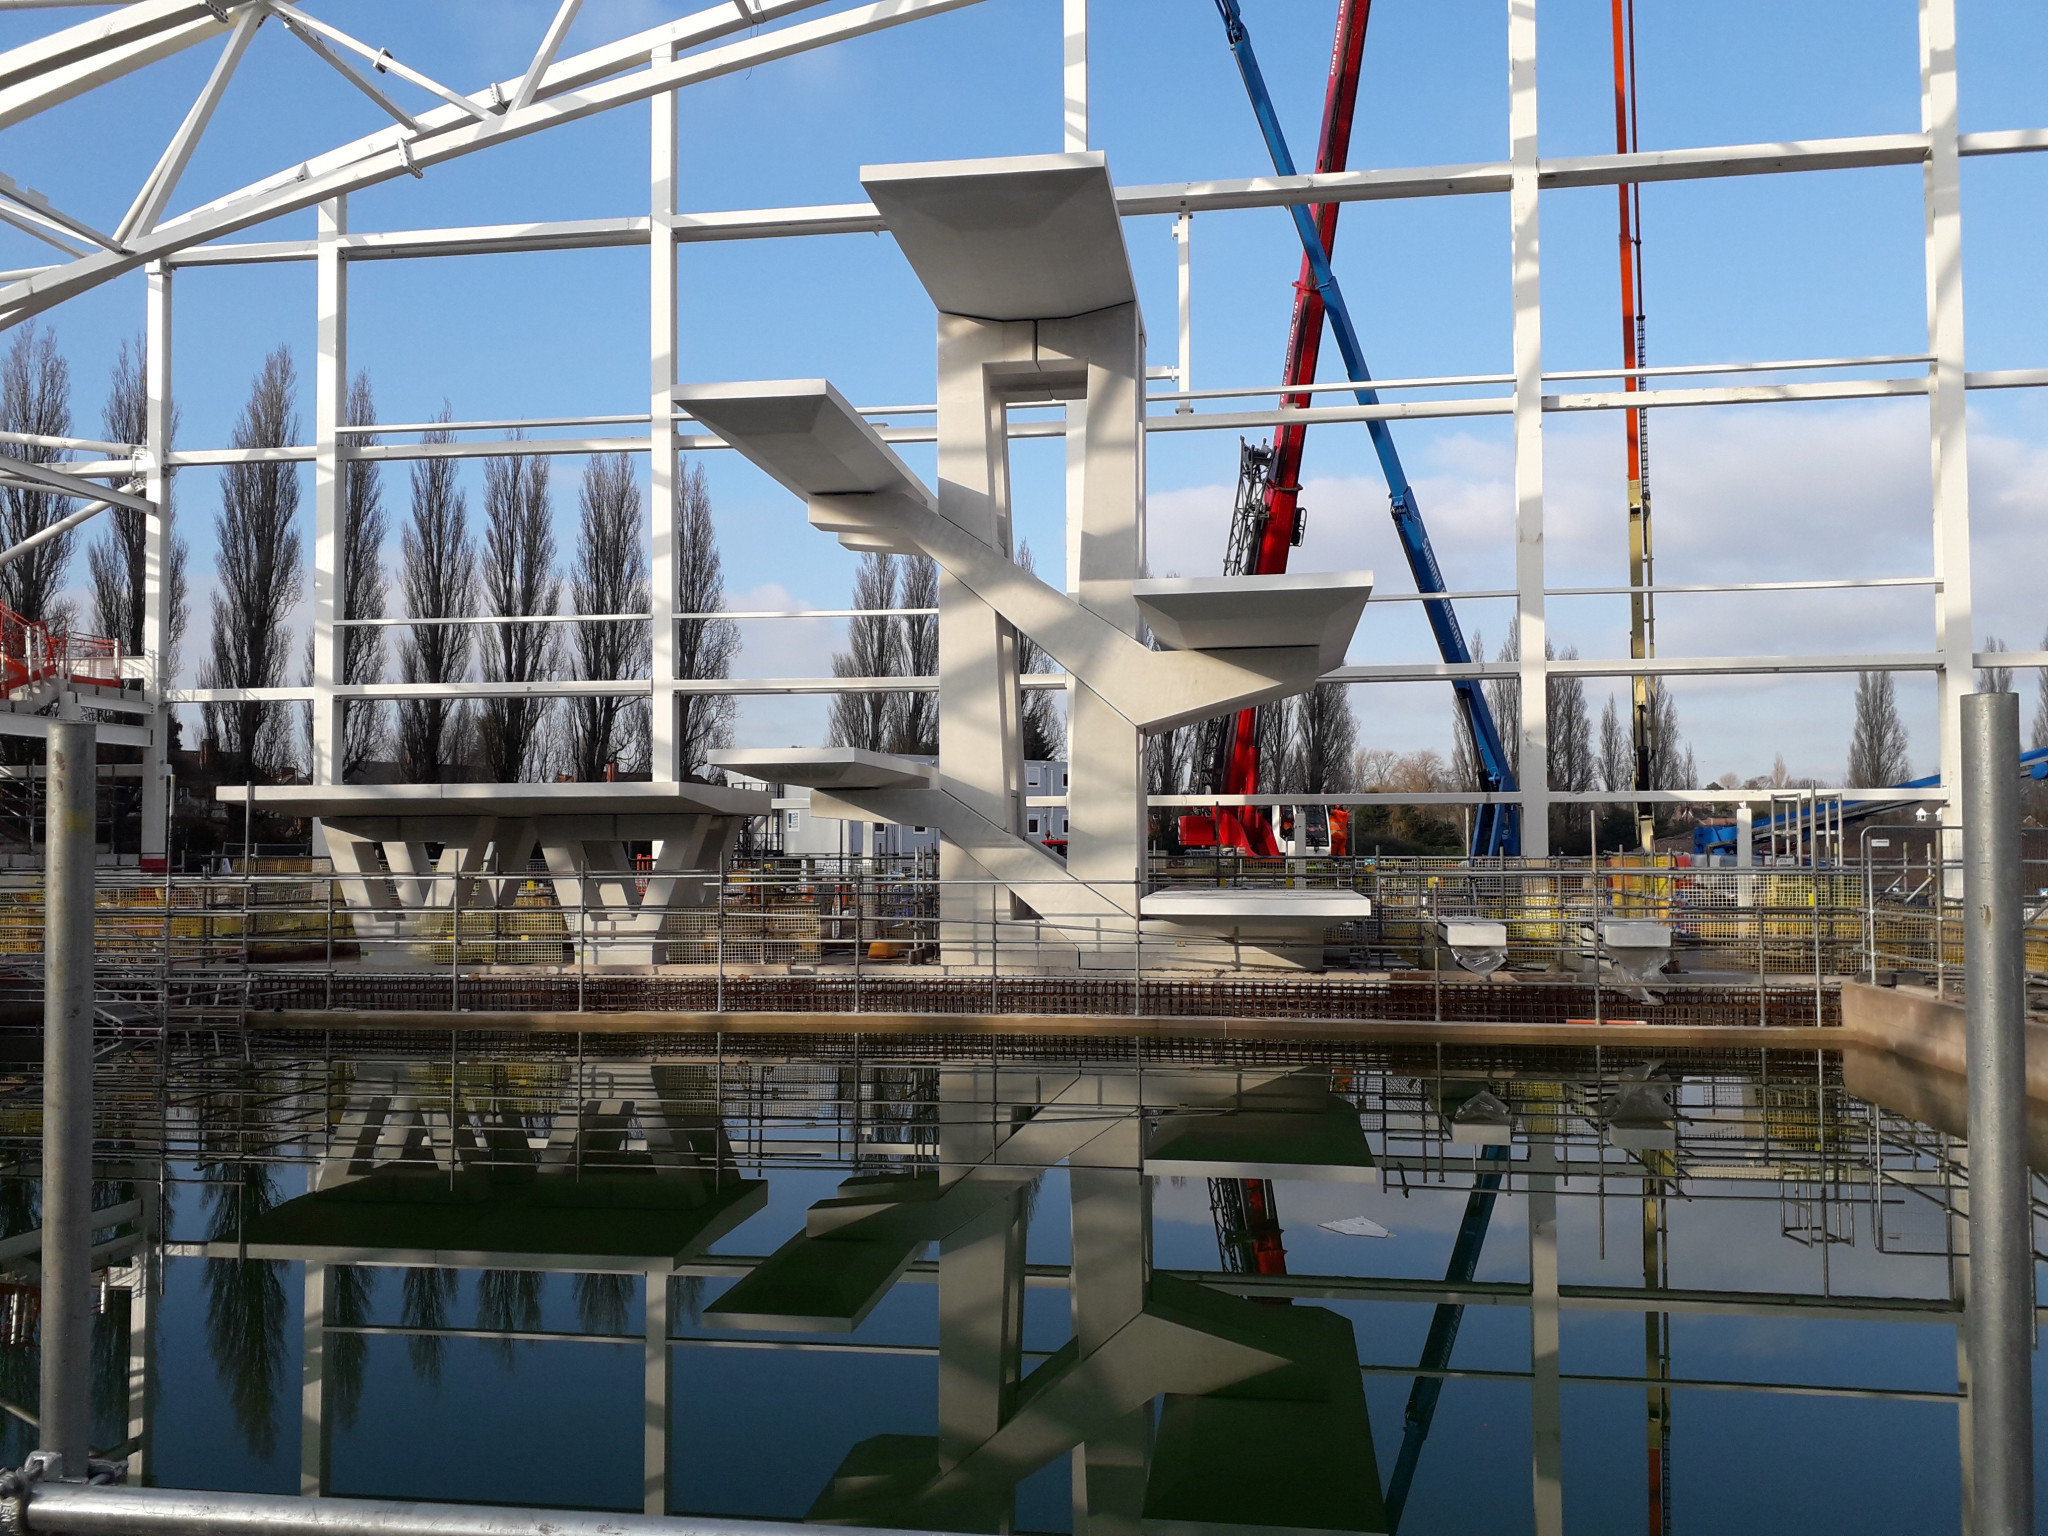 Diving tower completed at Birmingham 2022 aquatics venue